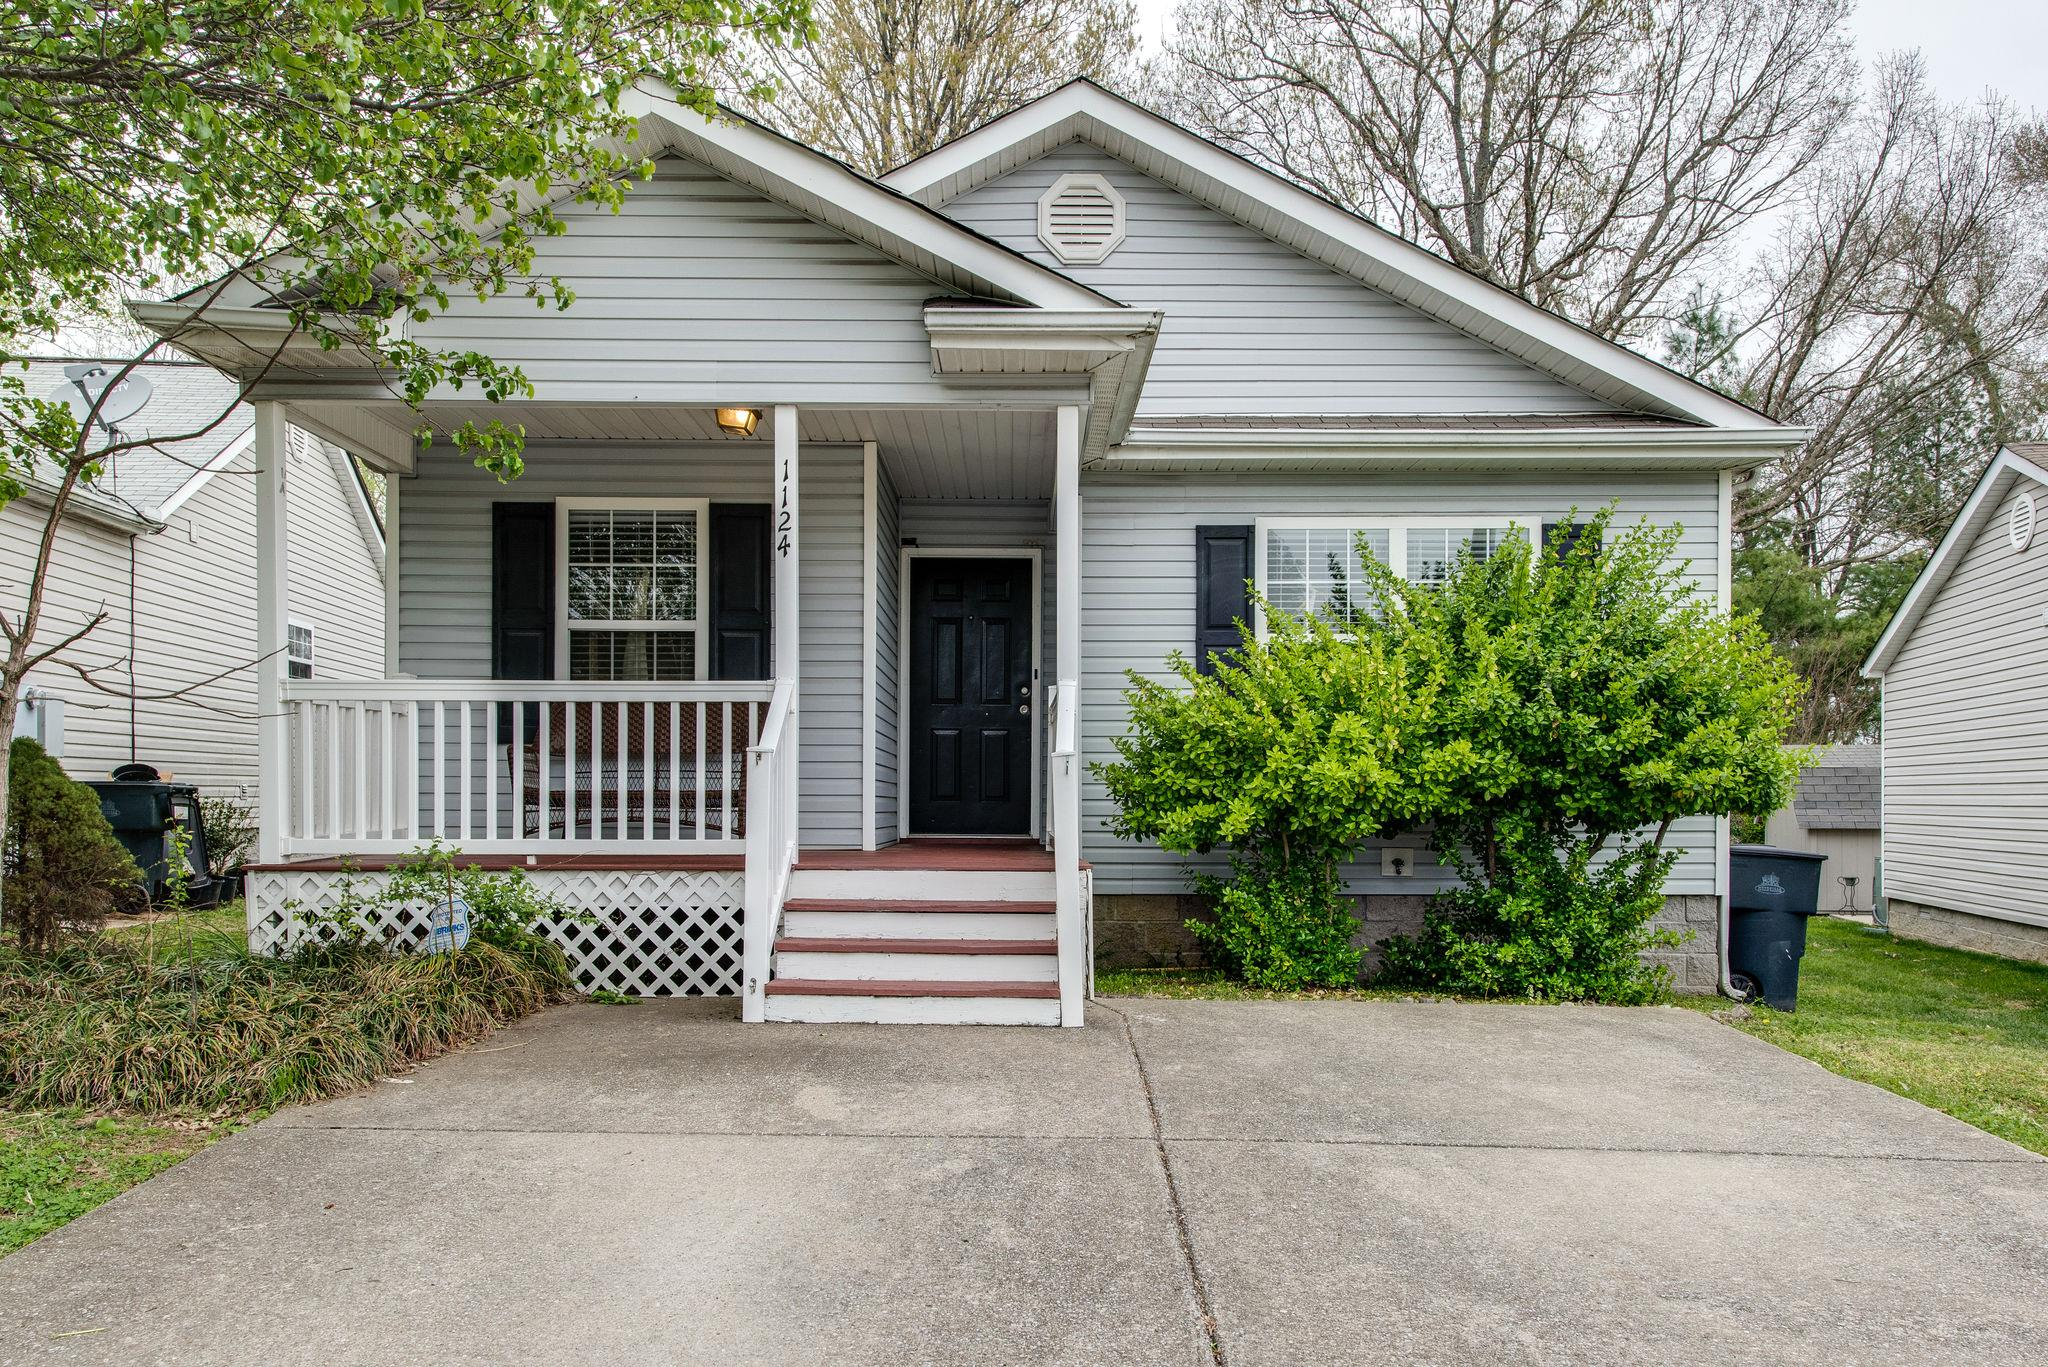 1124 Brittany Park Ln, Nashville-Antioch in Davidson County County, TN 37013 Home for Sale